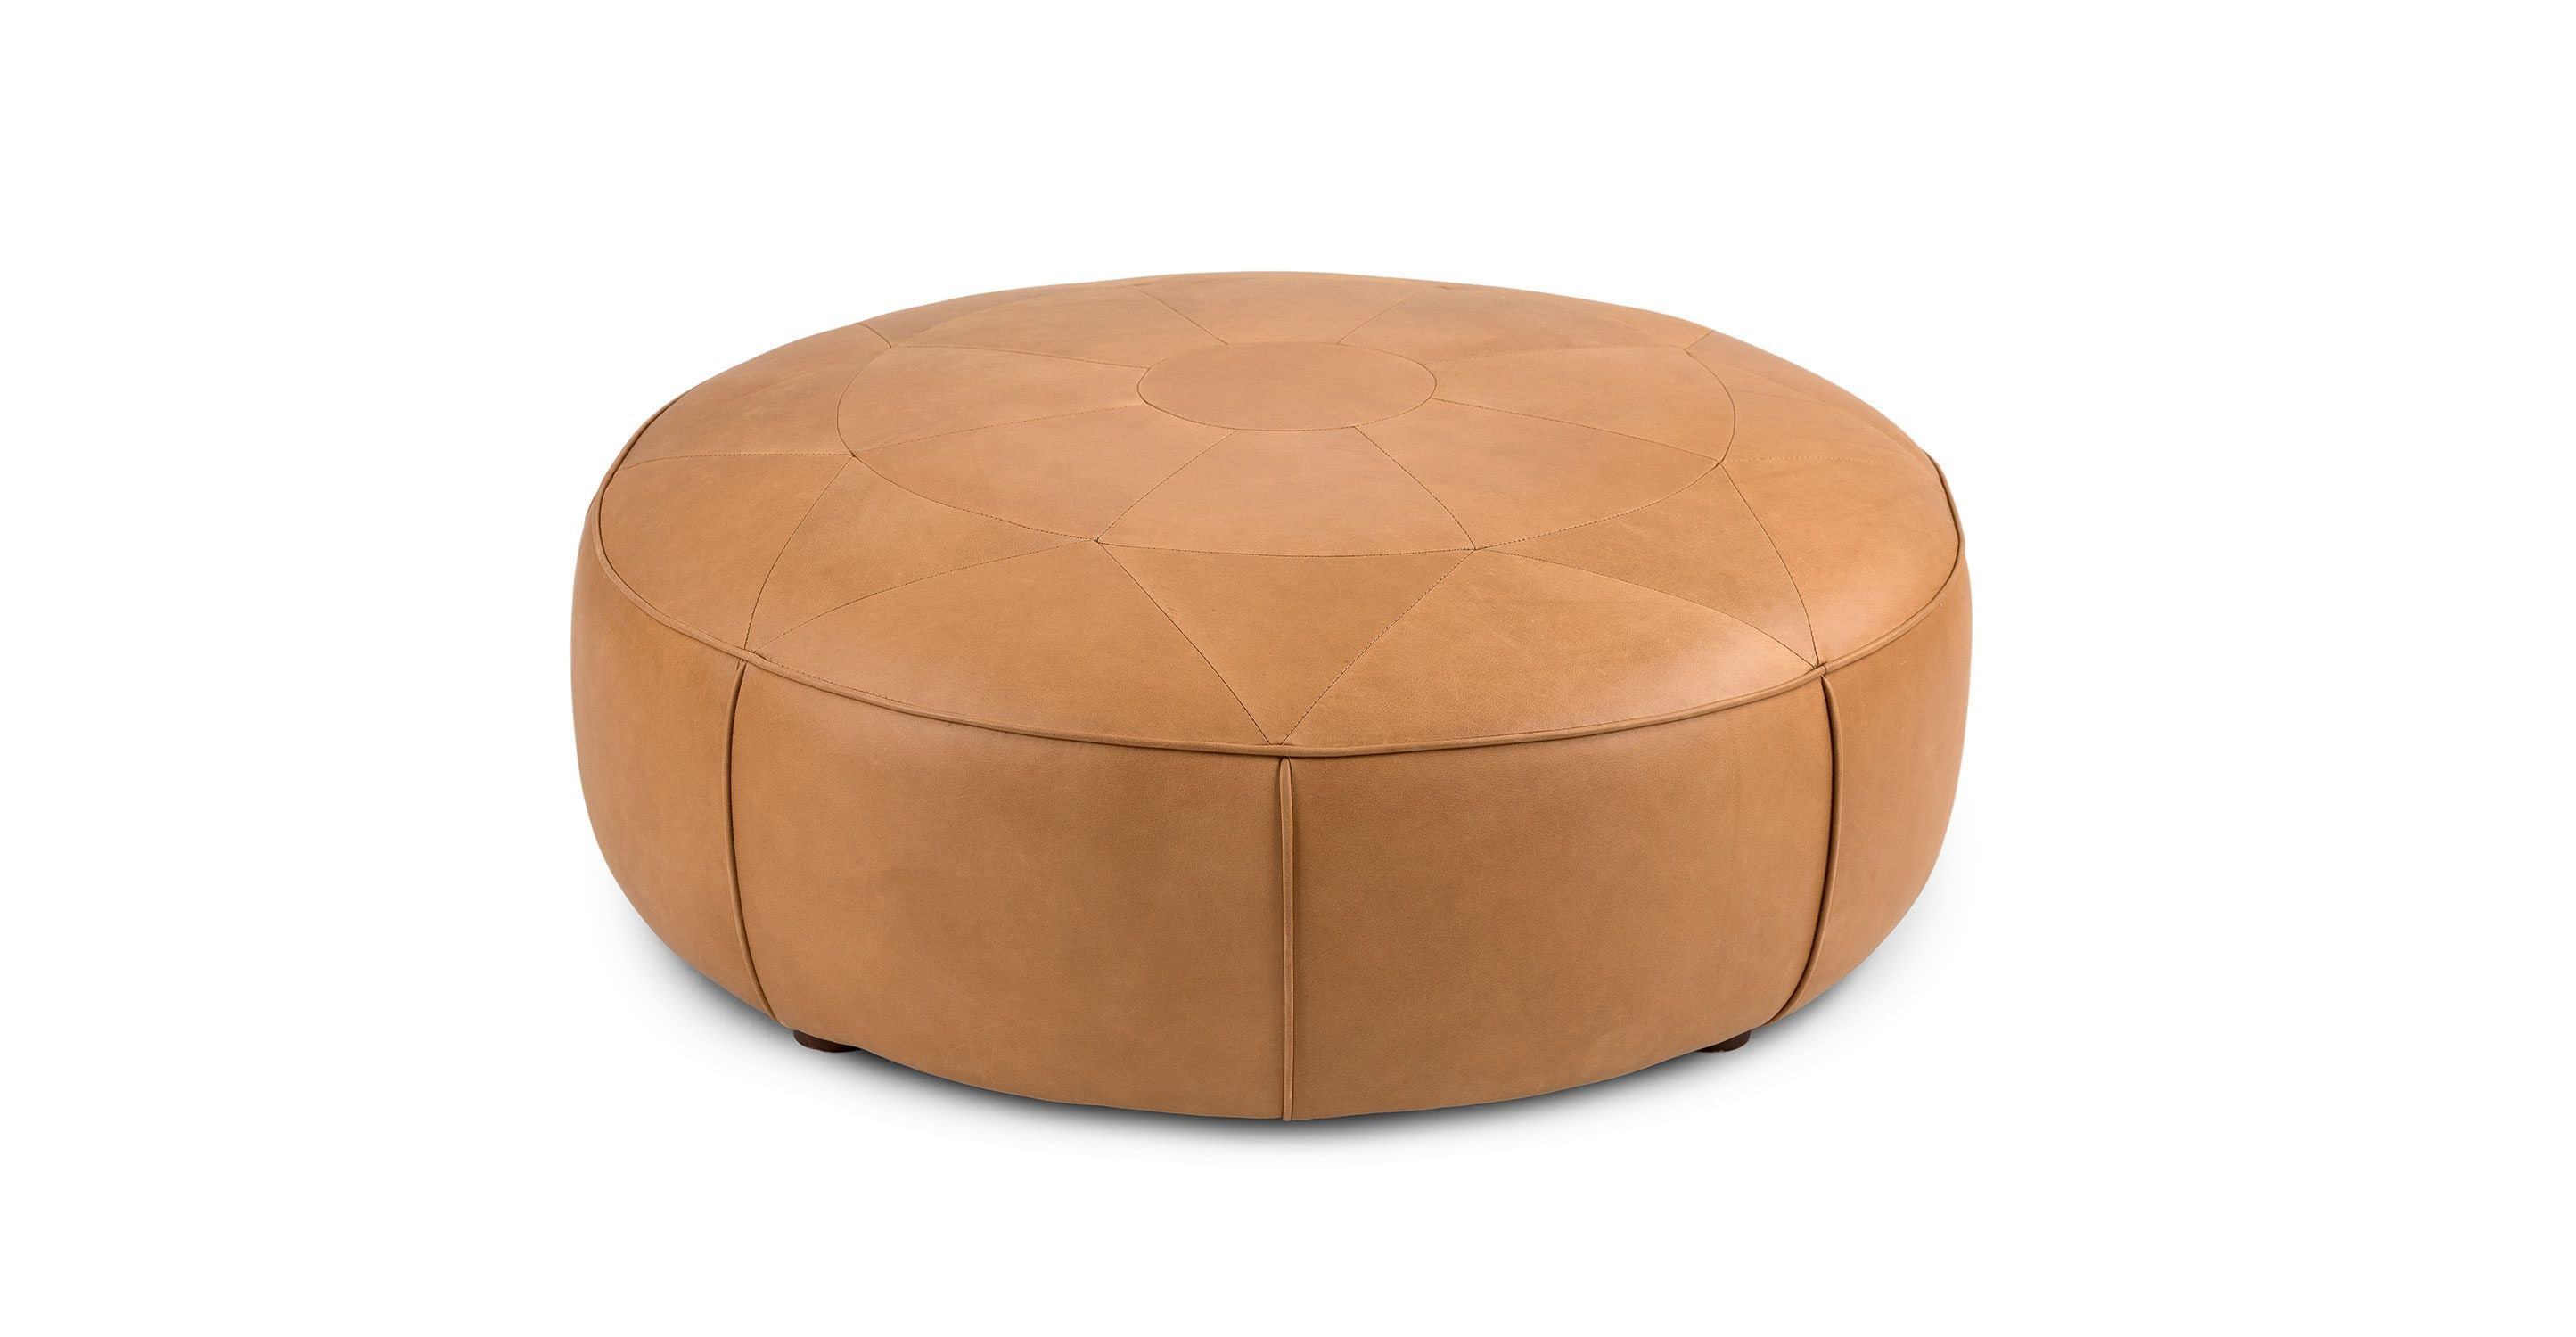 Admirable Tan Leather Tufted Ottoman Round Article Orbis Modern Caraccident5 Cool Chair Designs And Ideas Caraccident5Info